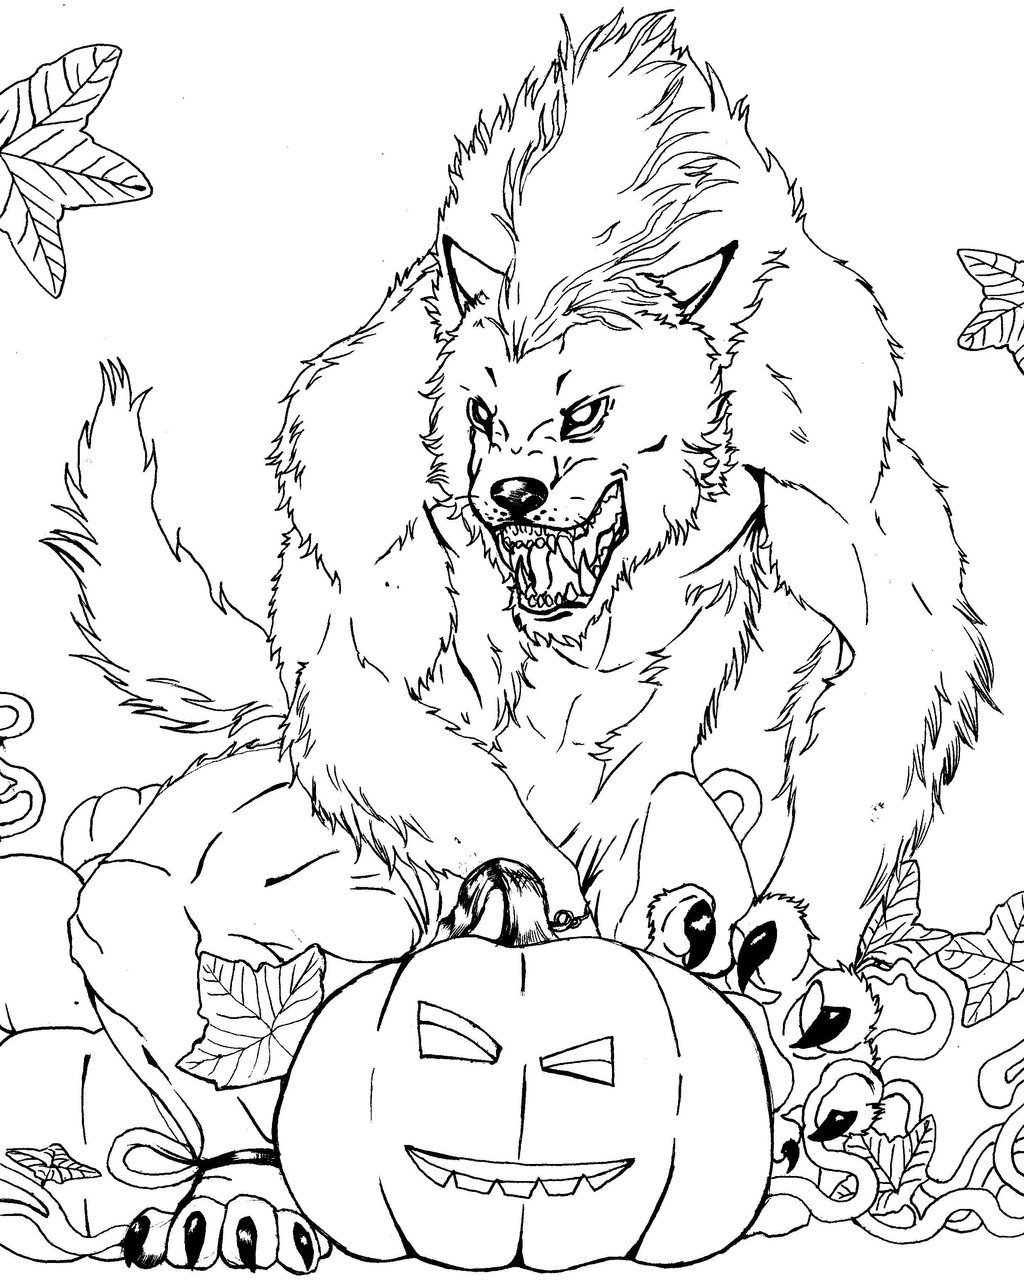 Coloring Pages Wolfman Coloring Pages werewolf coloring pictures az pages free page